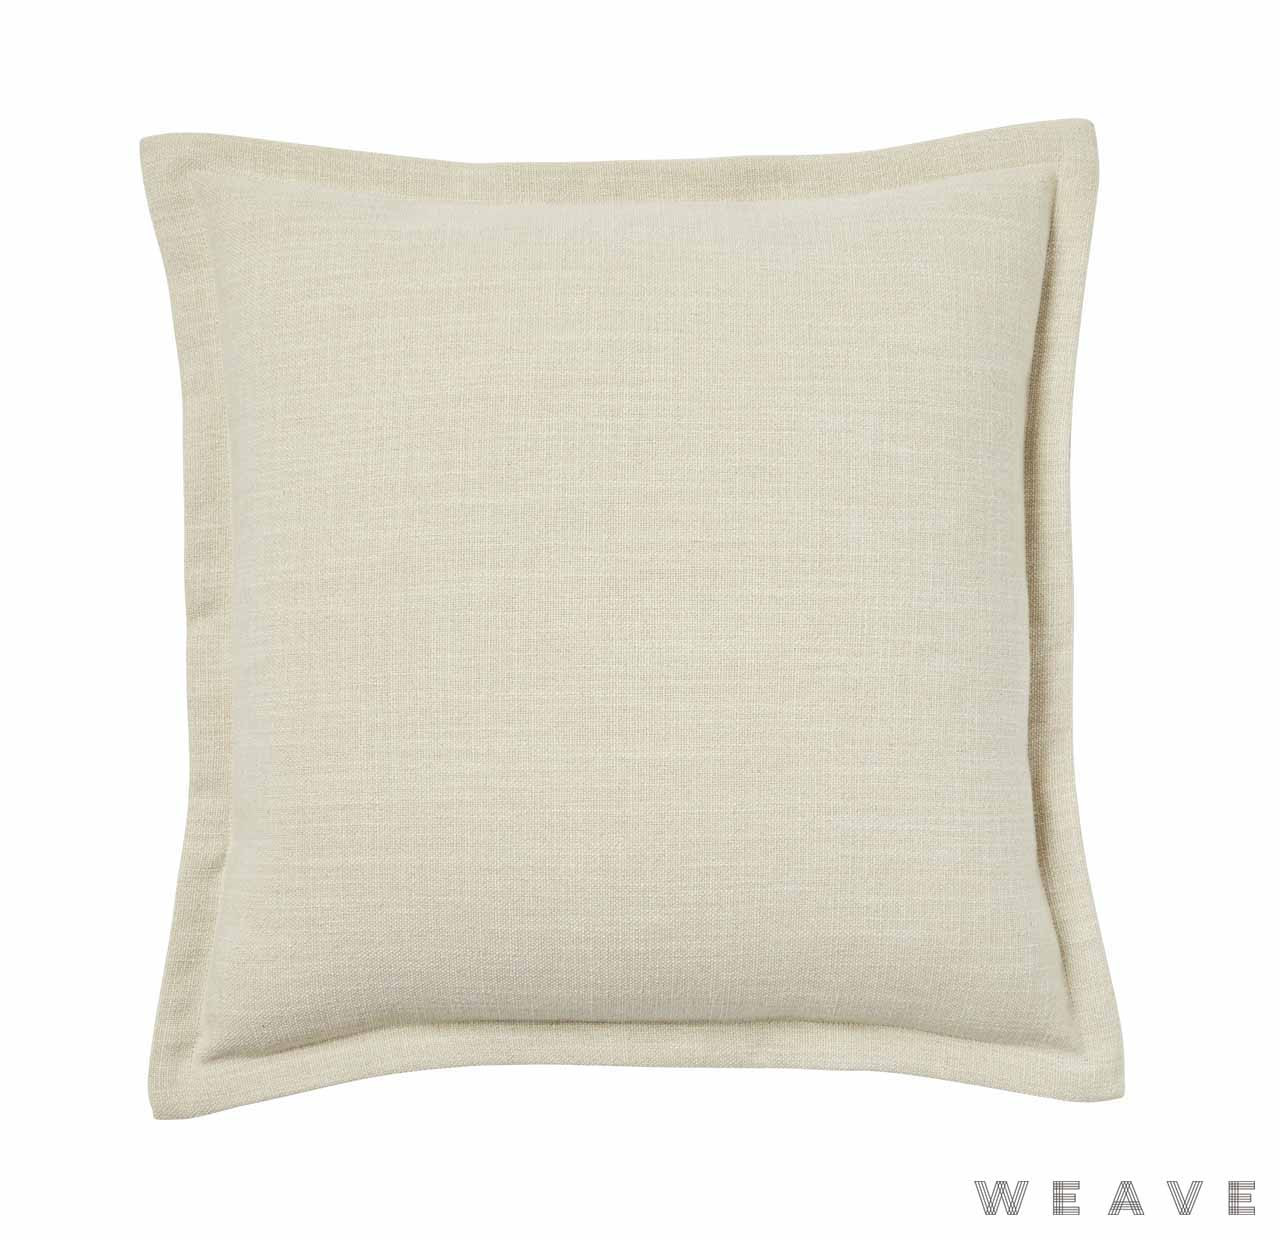 Weave - Austin Cushion - Sand (Pack of 2)  | Cusion Fabric - Beige, Plain, White, Weave, White